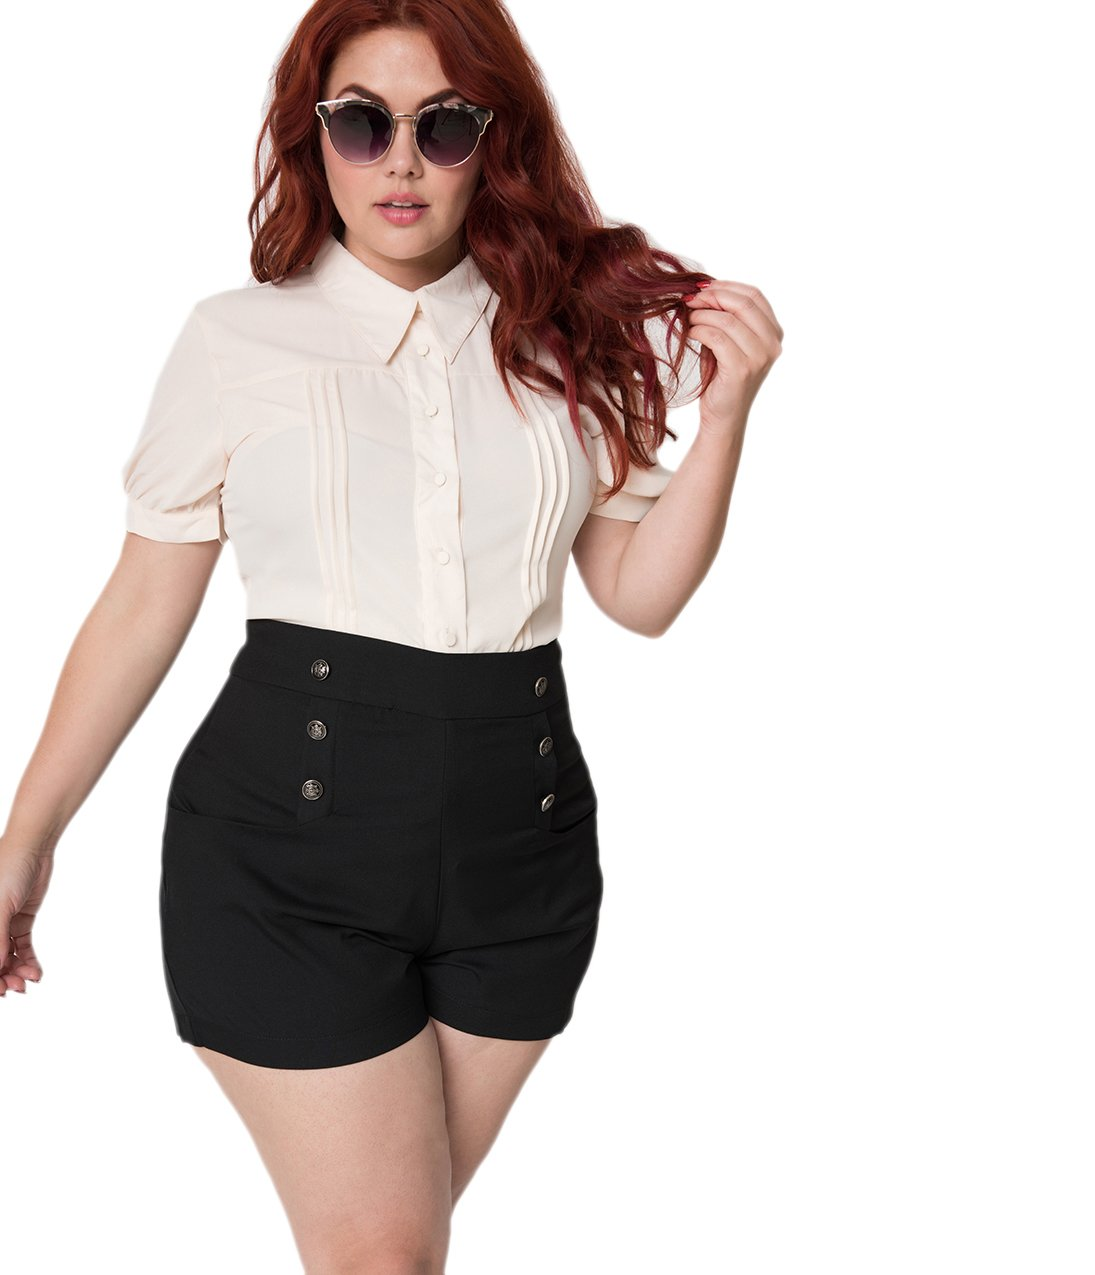 Unique Vintage Plus Size 1940s Style Black High Waist Sailor Debbie Shorts